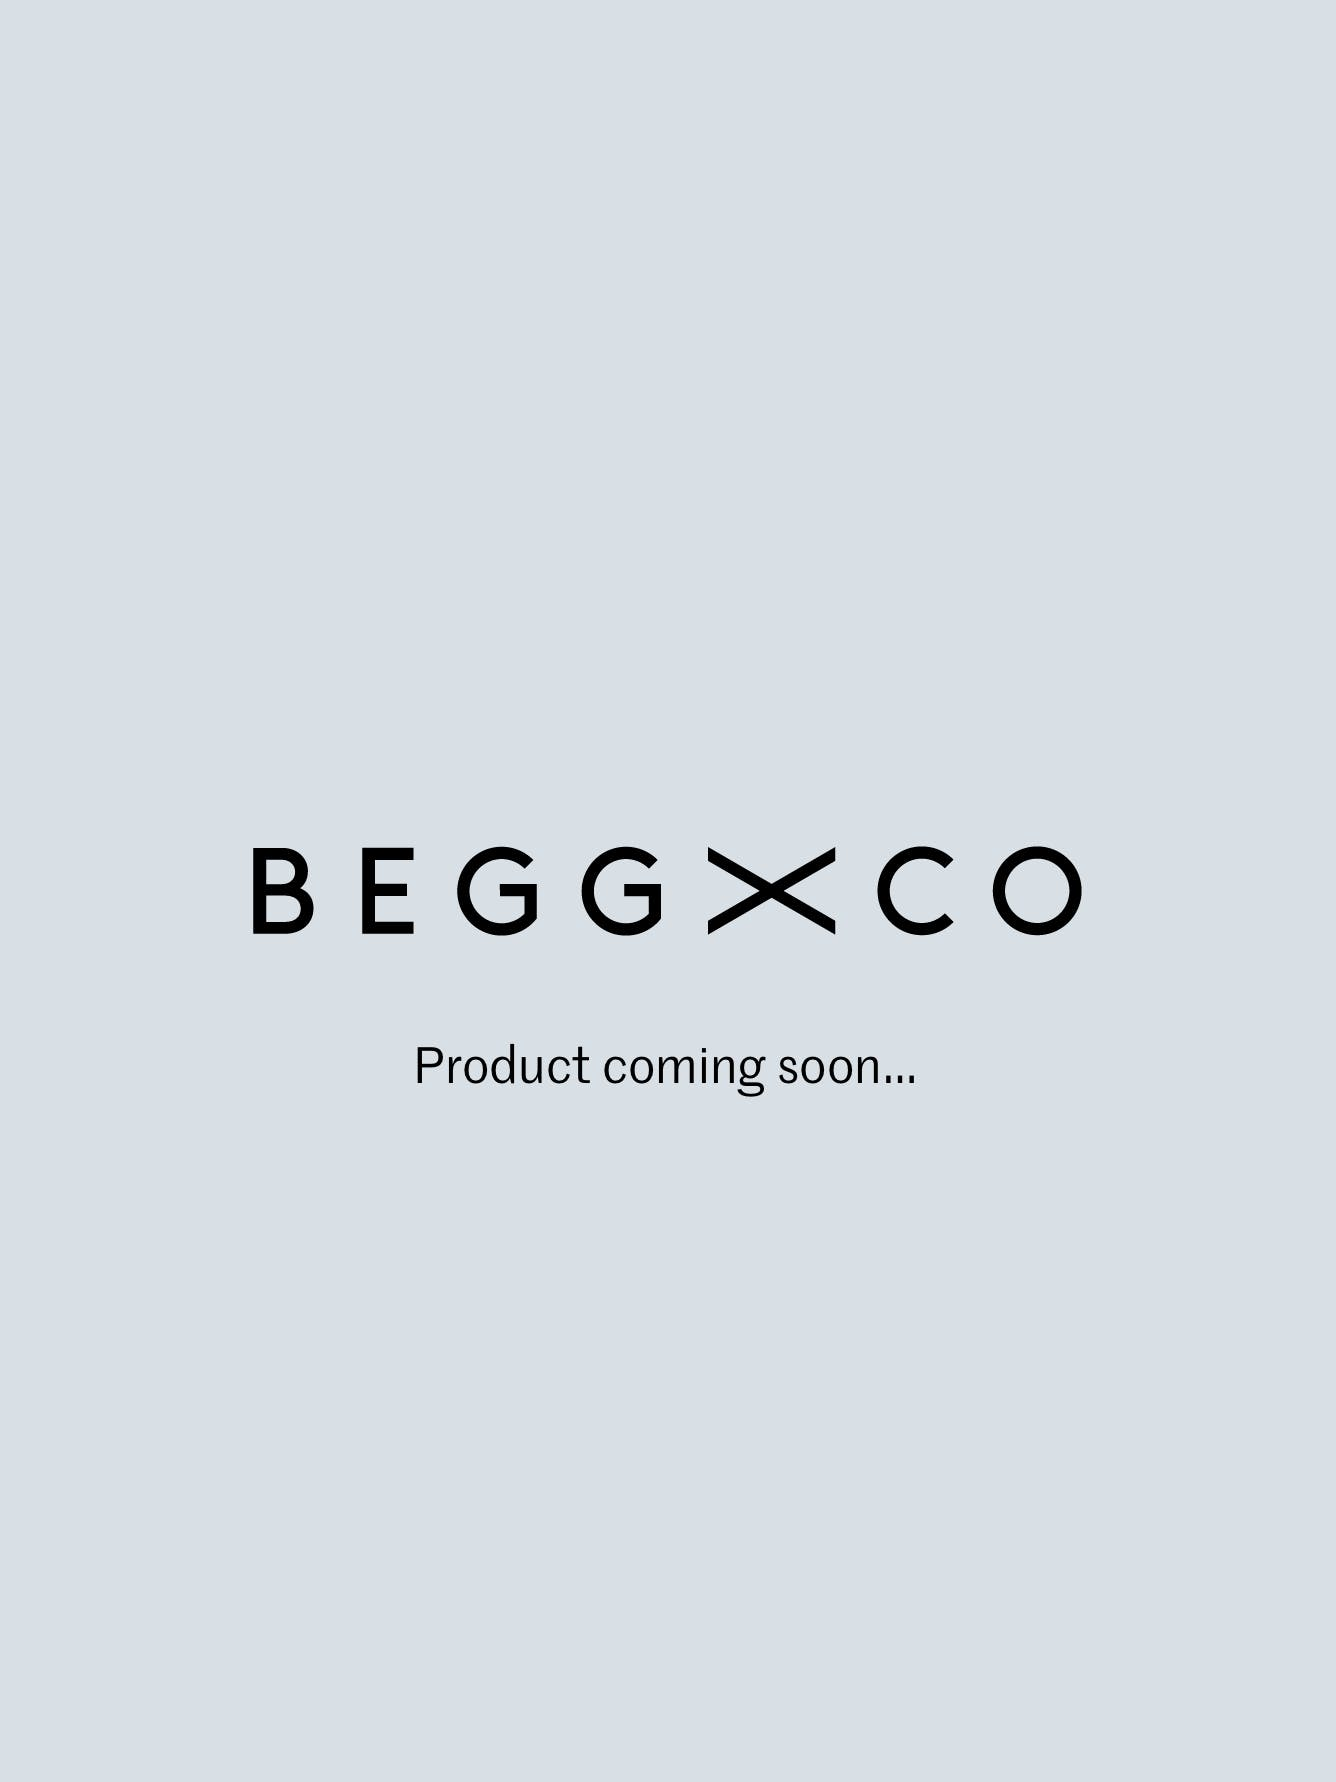 Unisex Cashmere Roll Collar Knitwear in Storm Sky | Begg x Co